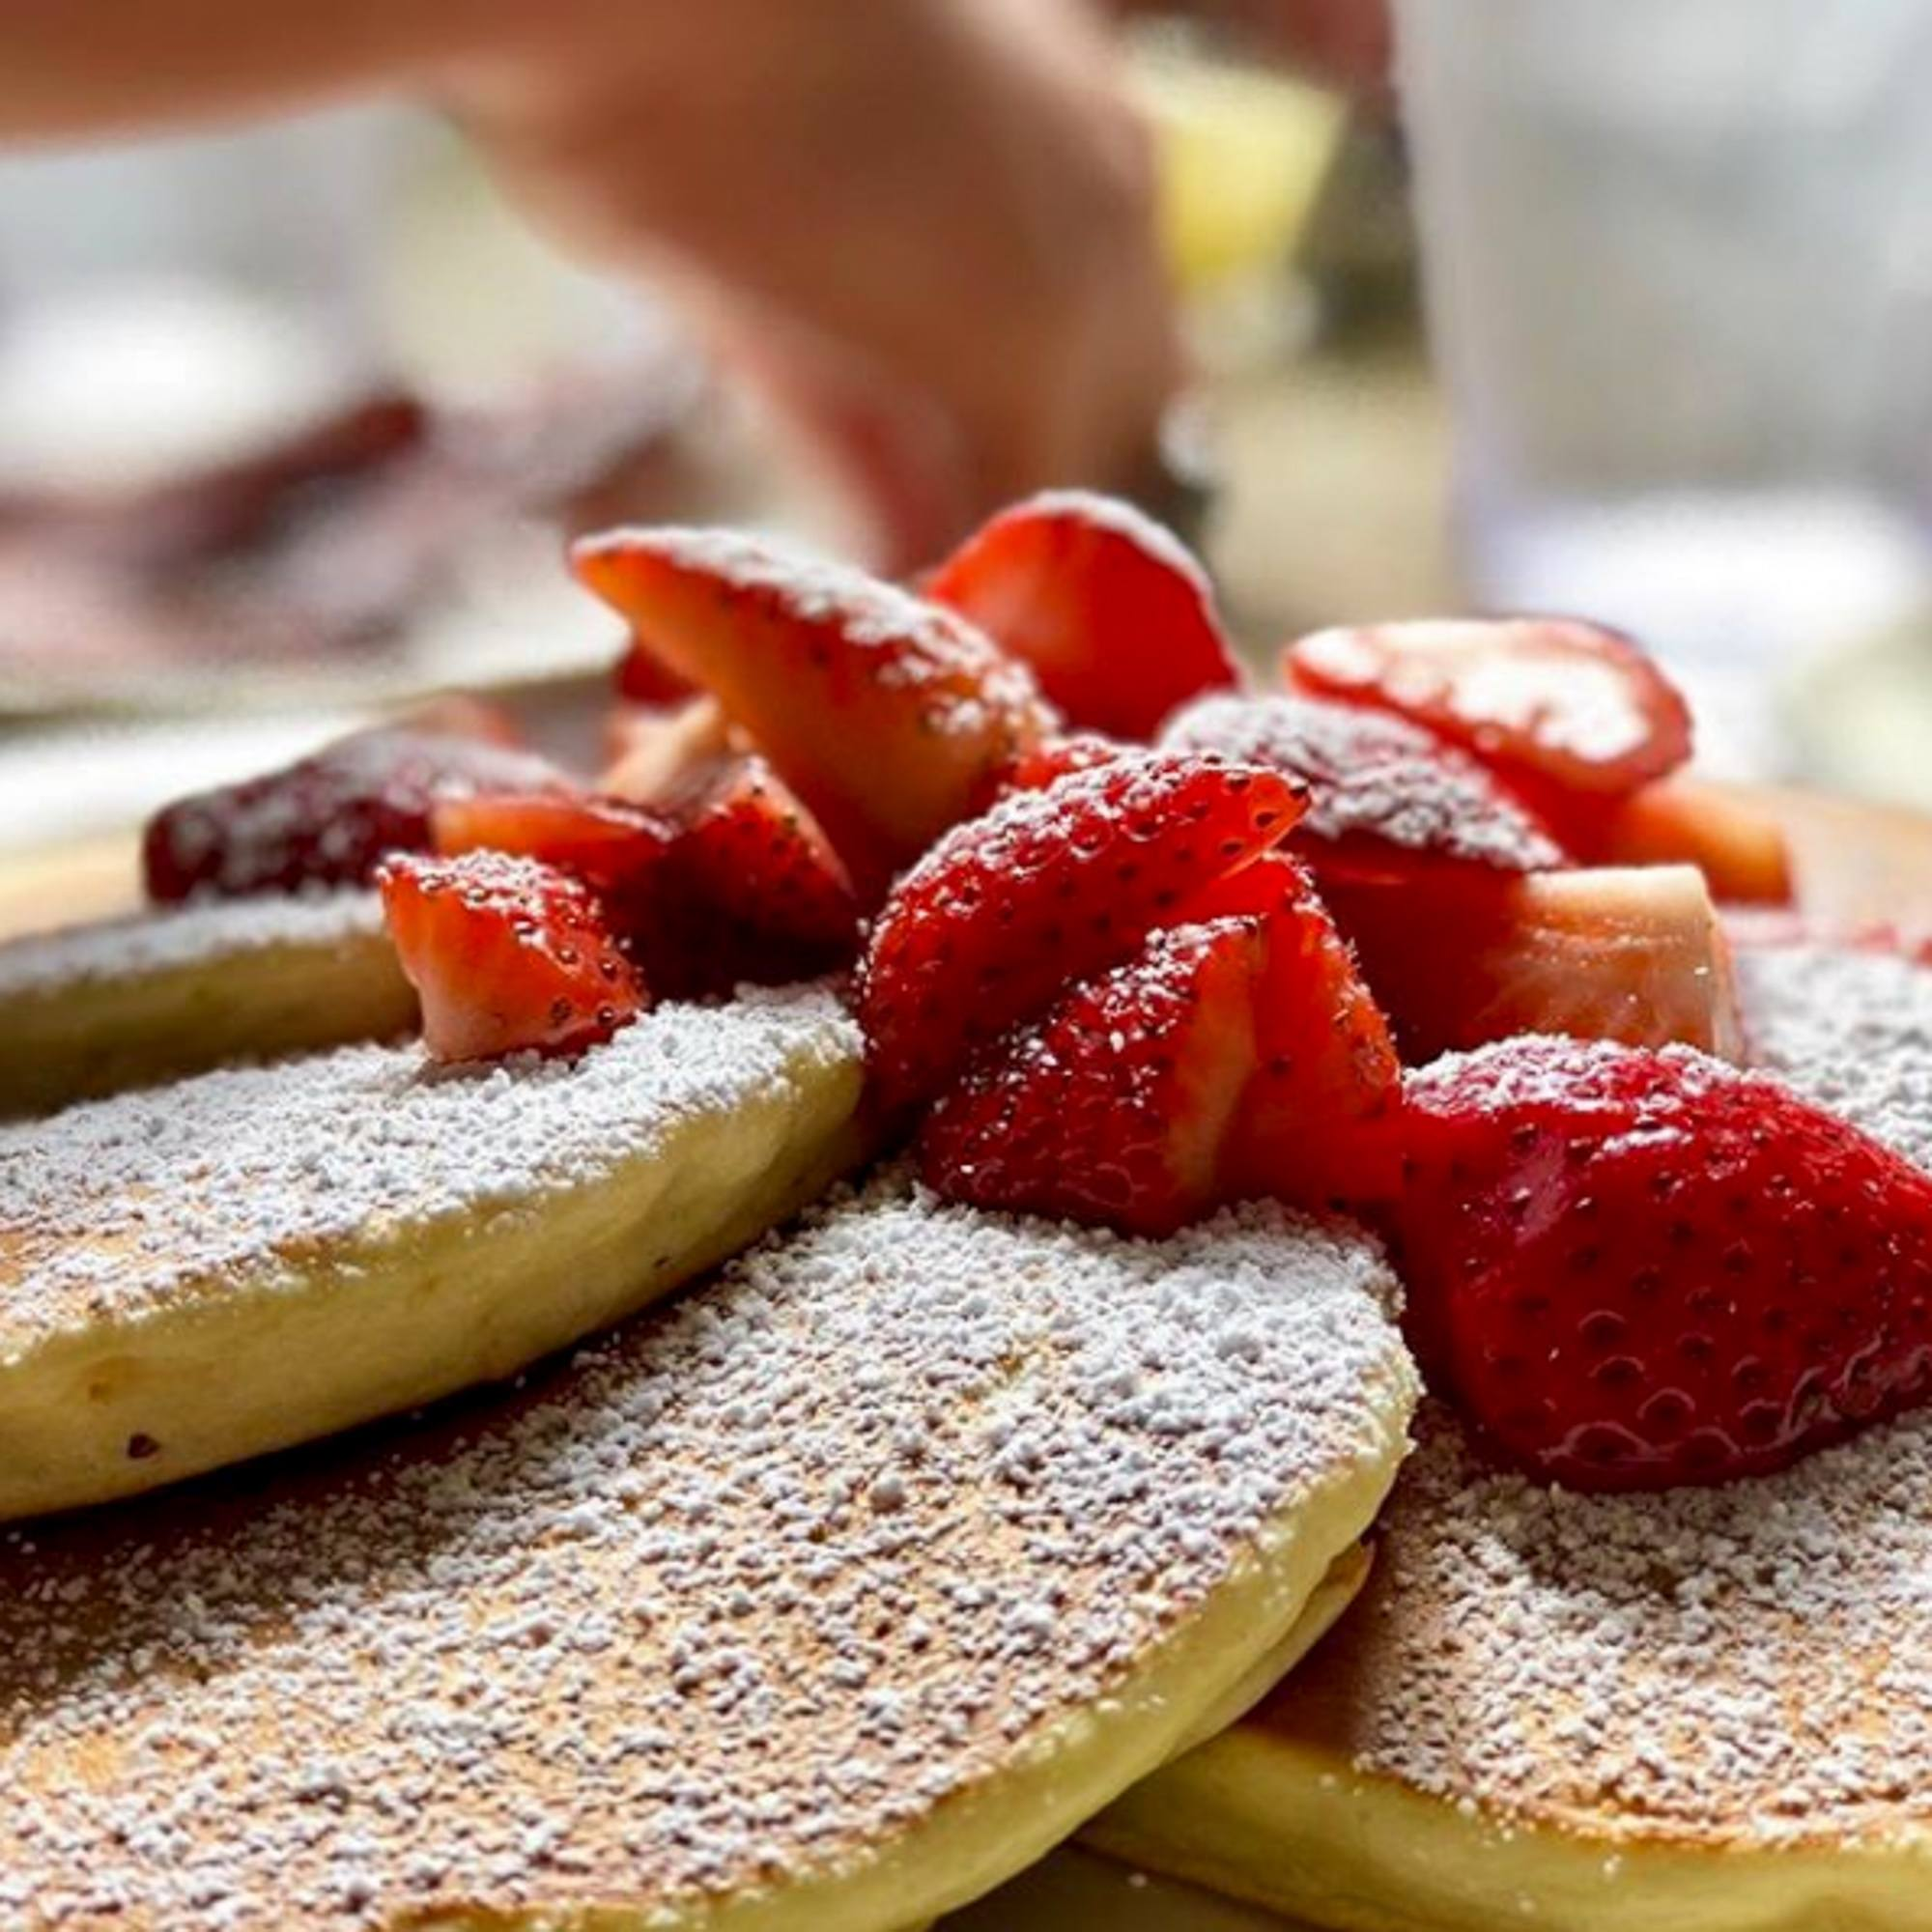 Strawberry pancakes from Richard Walker's Pancake House in San Diego's Gaslamp Quarter